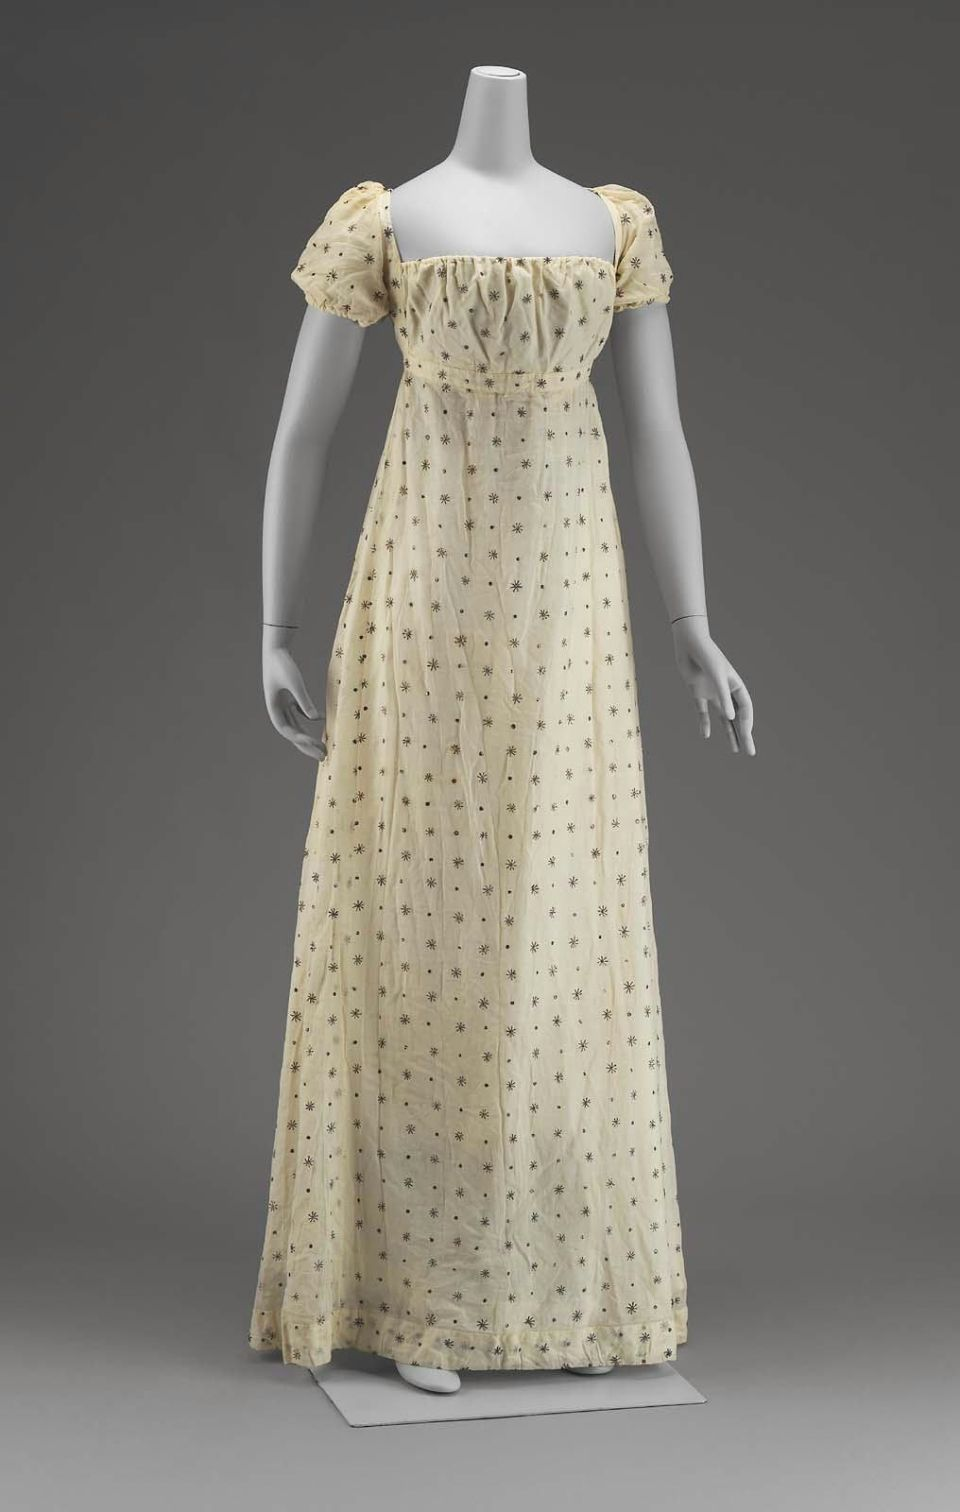 Dress Early 19th Century American Cotton Mull With